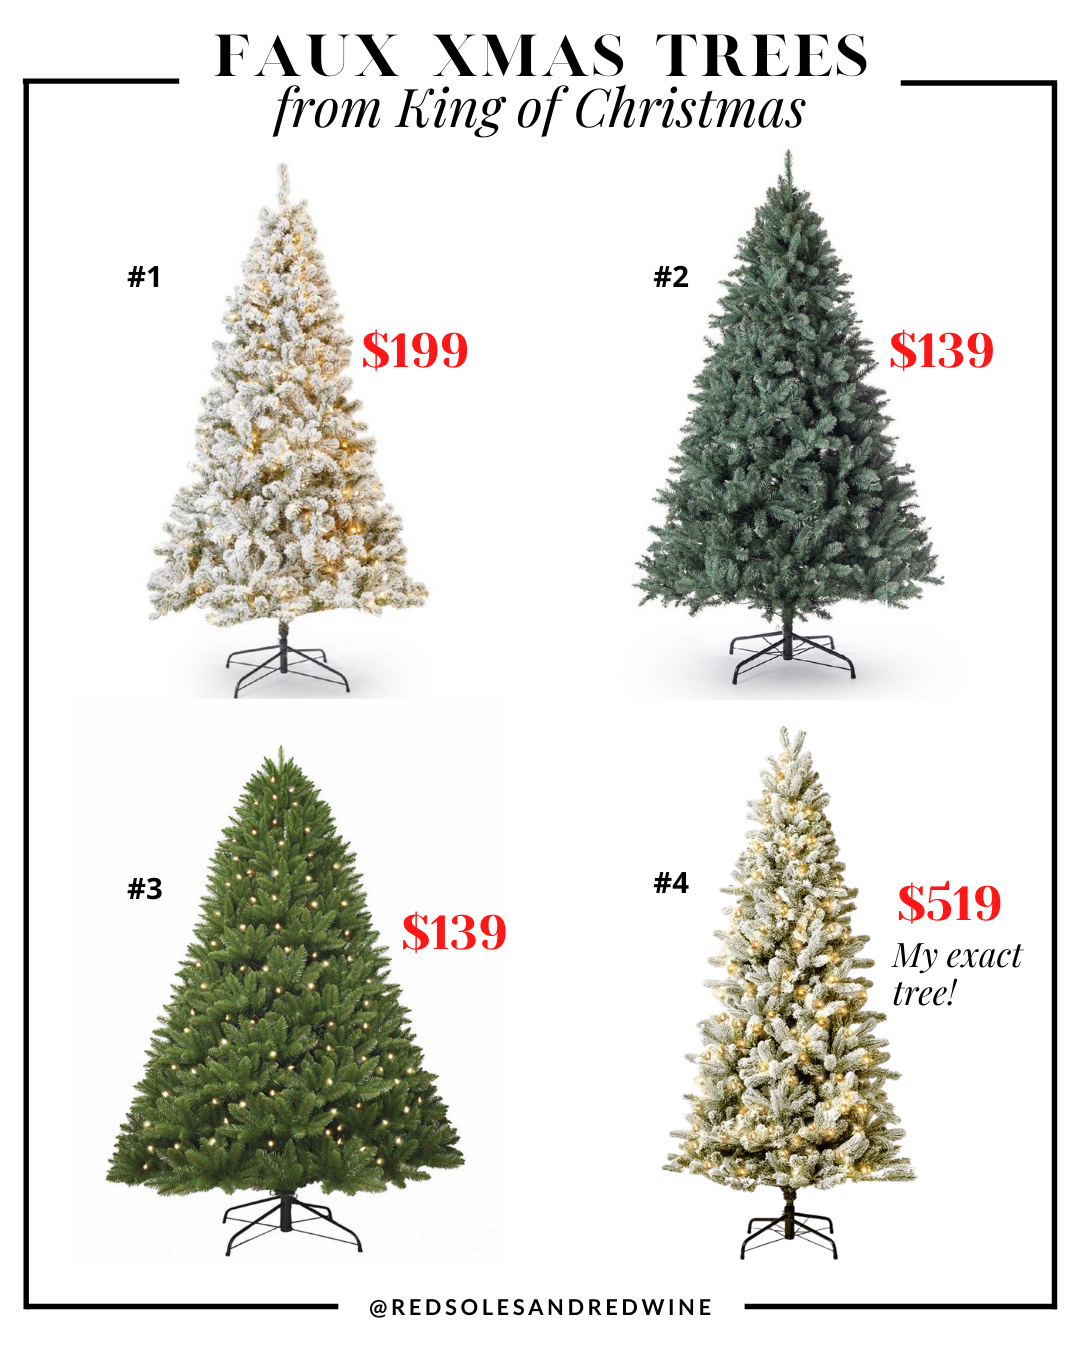 affordable artificial Christmas trees King of Christmas, affordable artificial Christmas trees, affordable faux christmas trees, realistic looking faux christmas trees, faux xmas trees, christmas tree decorating ideas, christmas tree inspiration, faux christmas tree decor inspiration, holiday decor, Red Soles and Red Wine, Jennifer Worman